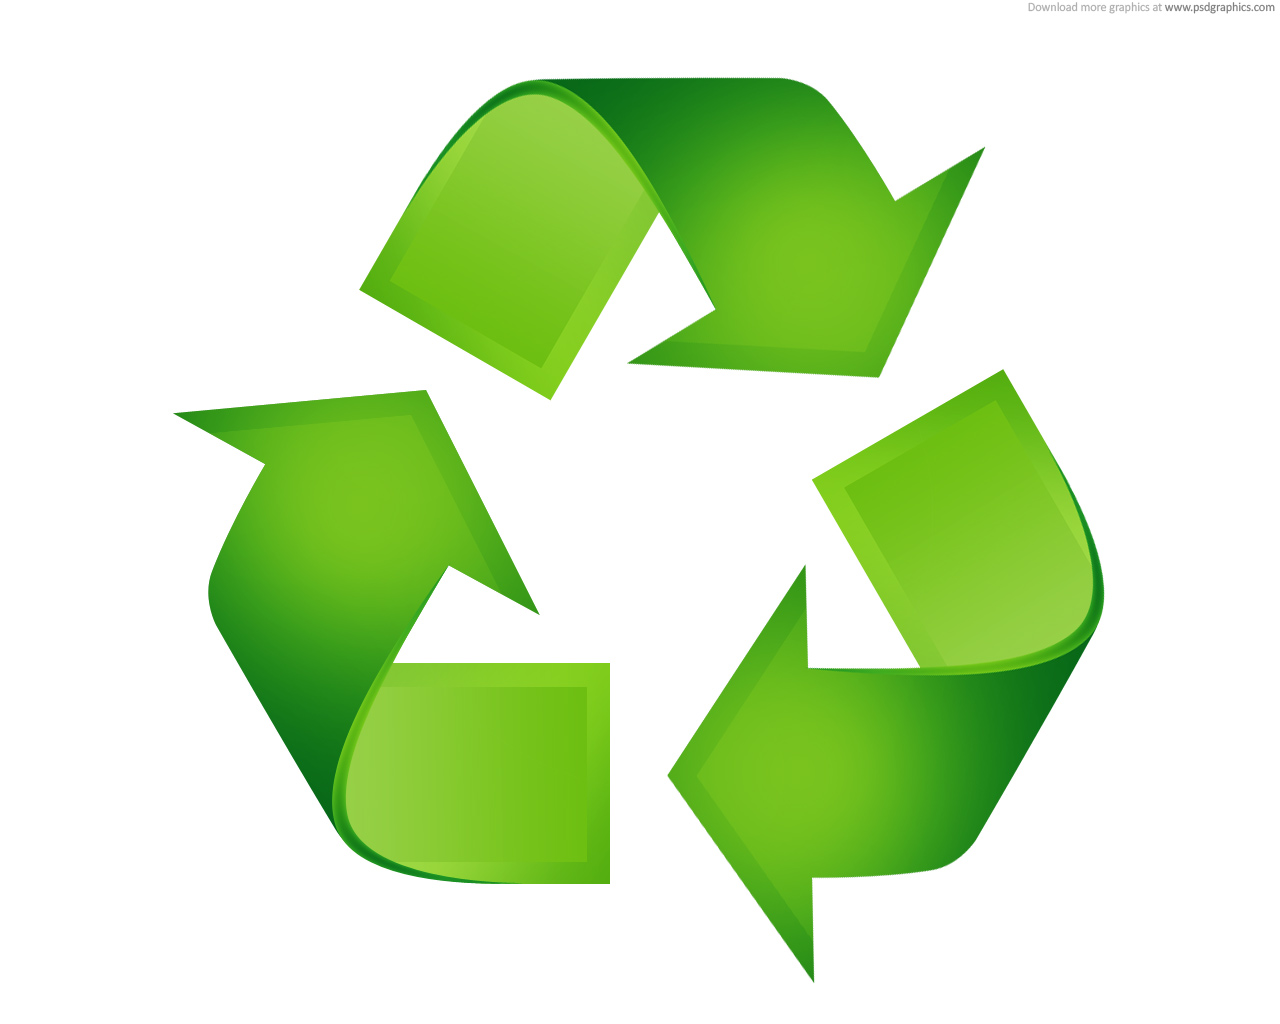 greenrecyclingsymbol